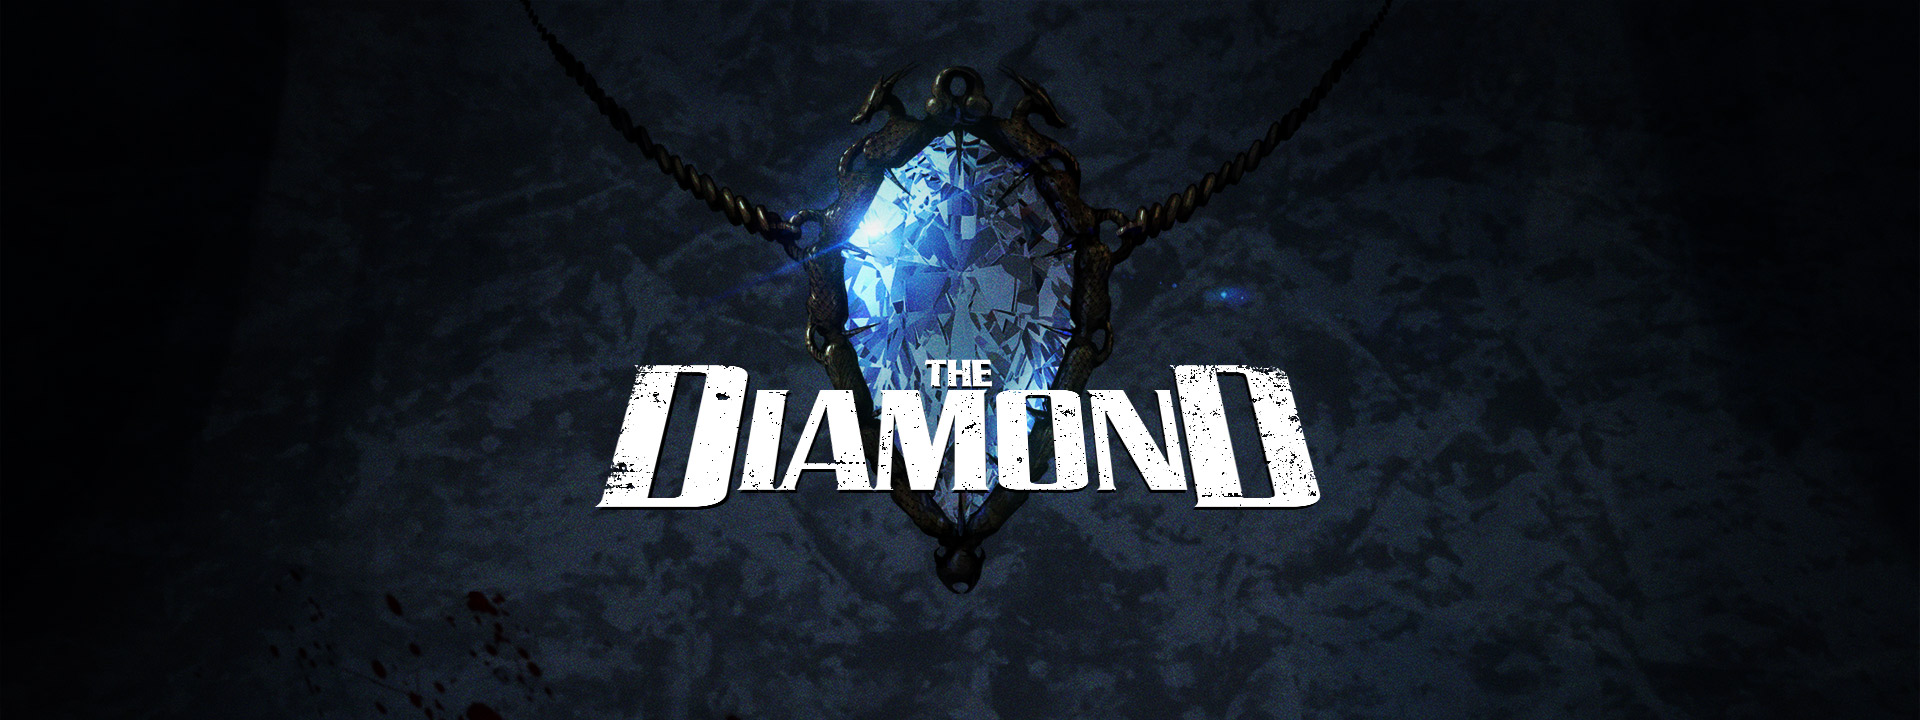 thediamond_trailer